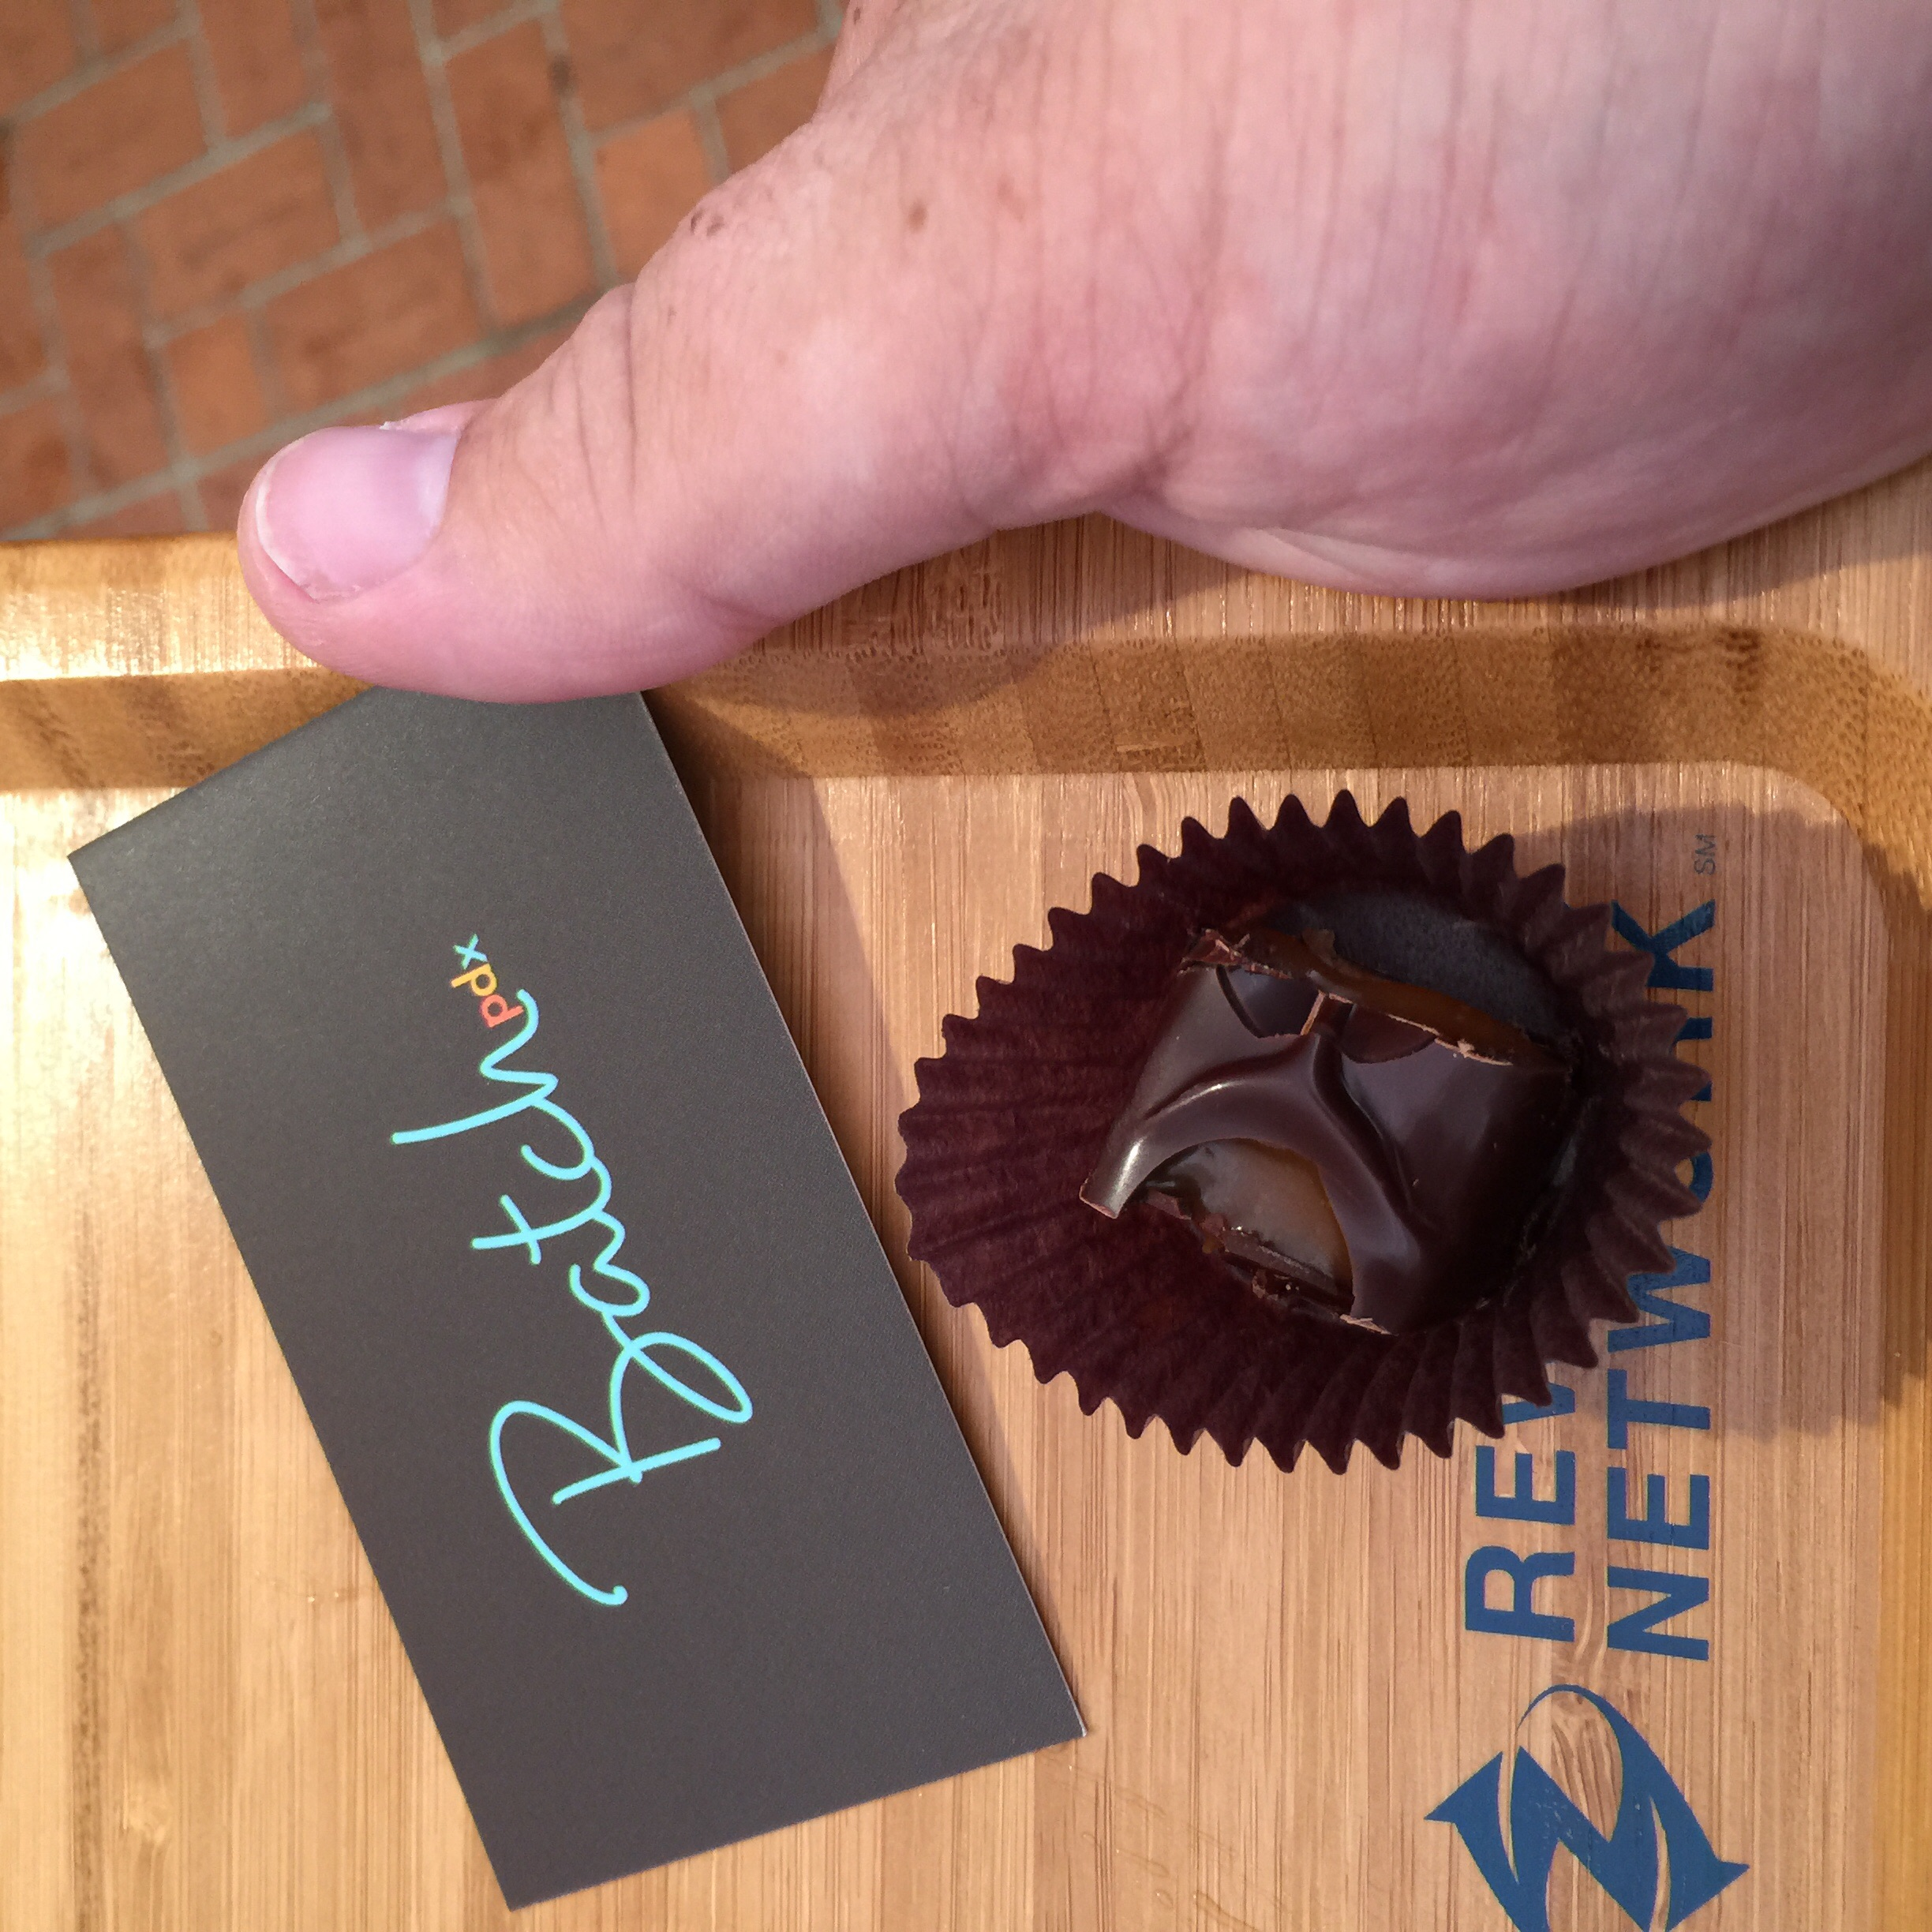 BatchPDX specializes in handmade chocolates